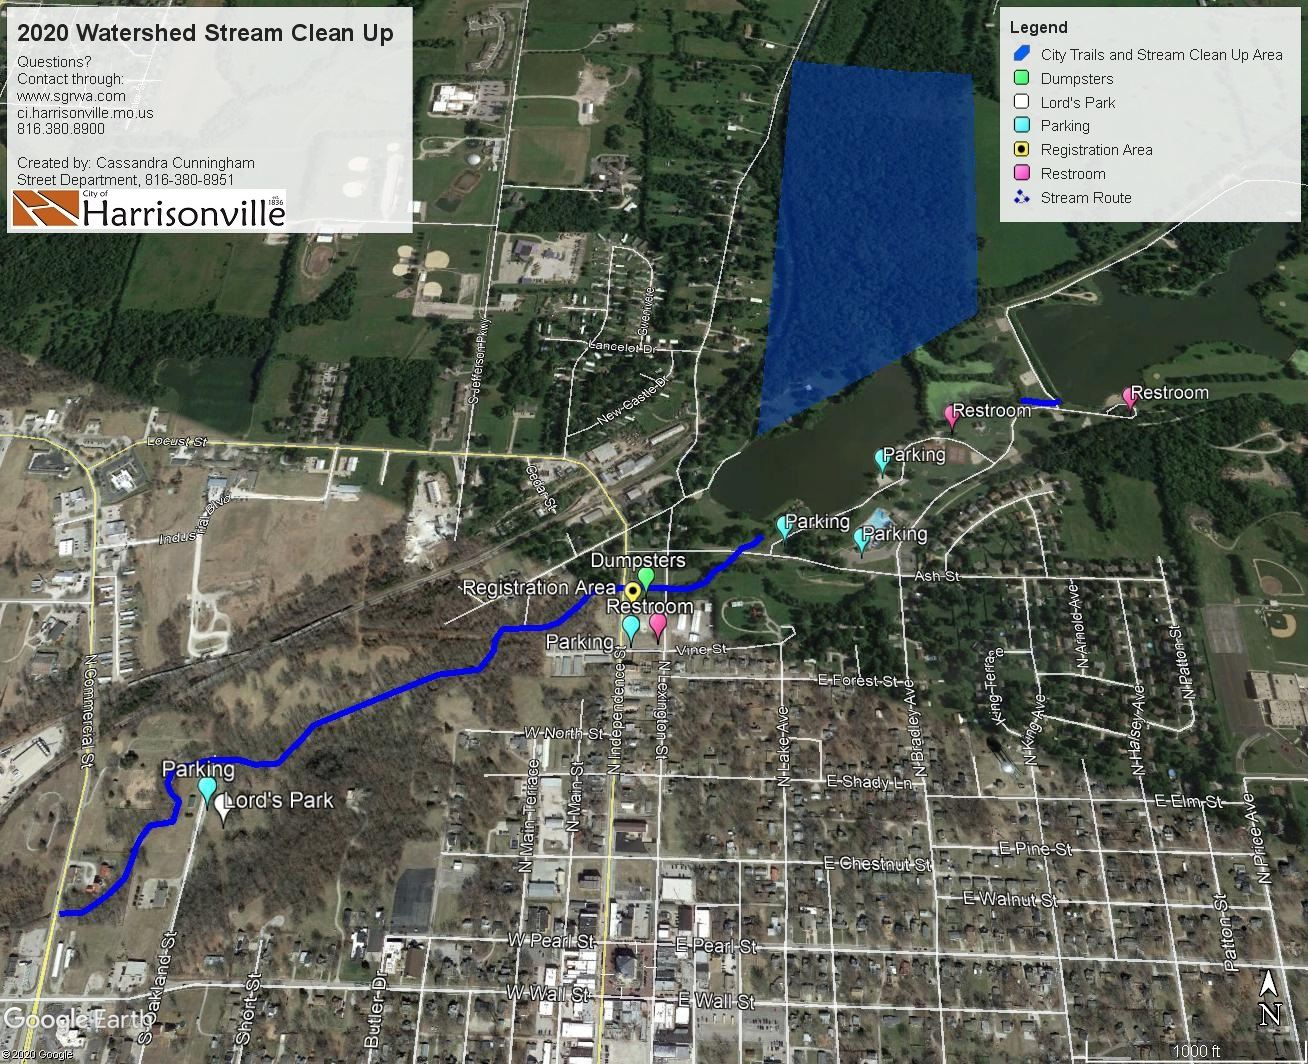 2020 Watershed Stream Cleanup Event Map